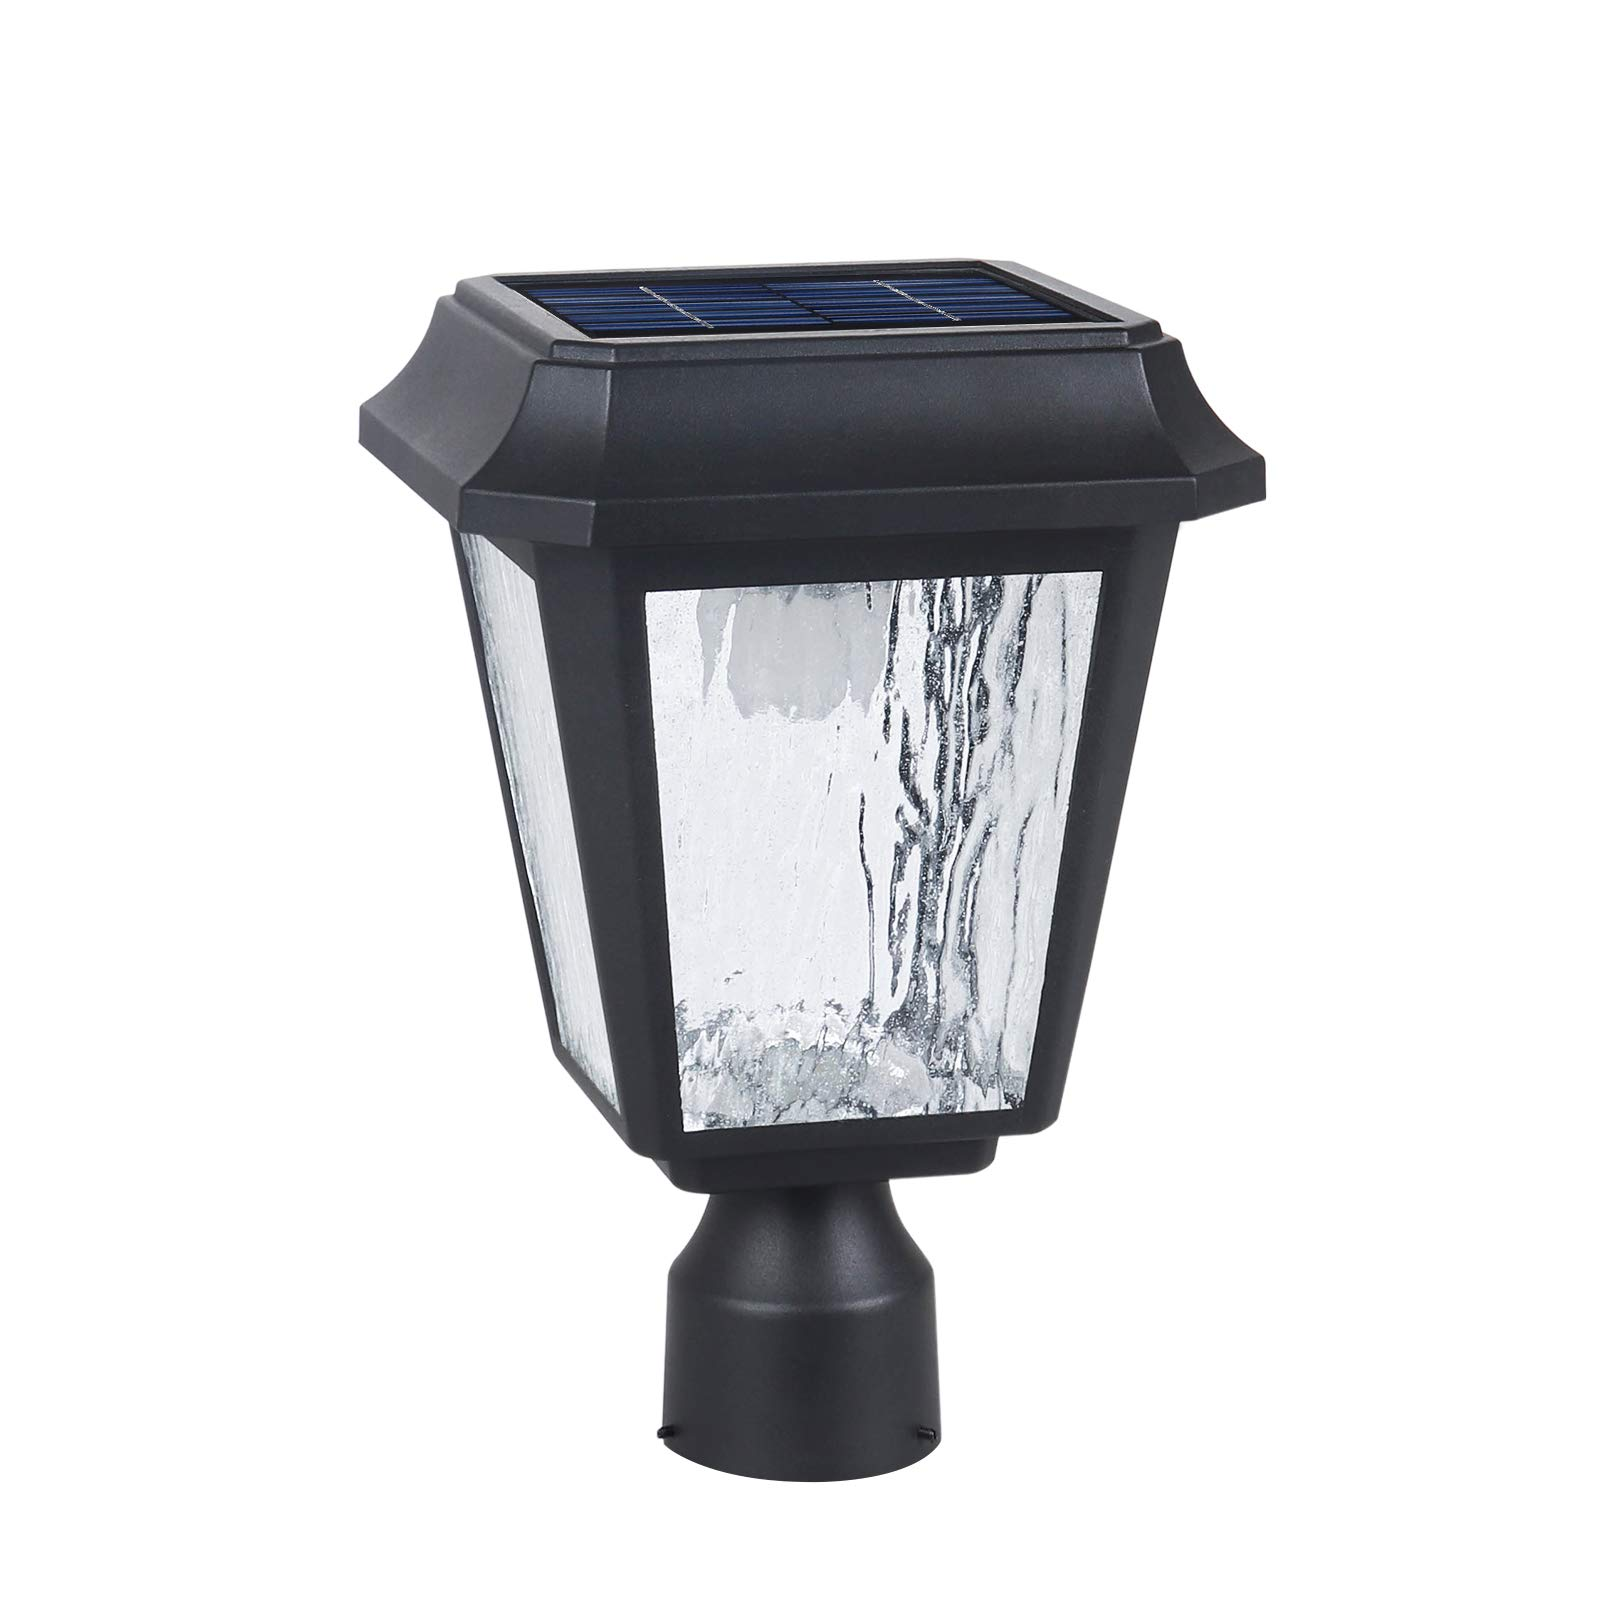 Solar Post Light Solar Powered Lamp Post Light Solar Post Cap Light Solar Patio Light Fabulously Bright 150 LUMENS Made of Aluminum die-Casting and Glass ST4618Q-A with 3 inches Post Adaptor by KMC LIGHITNG